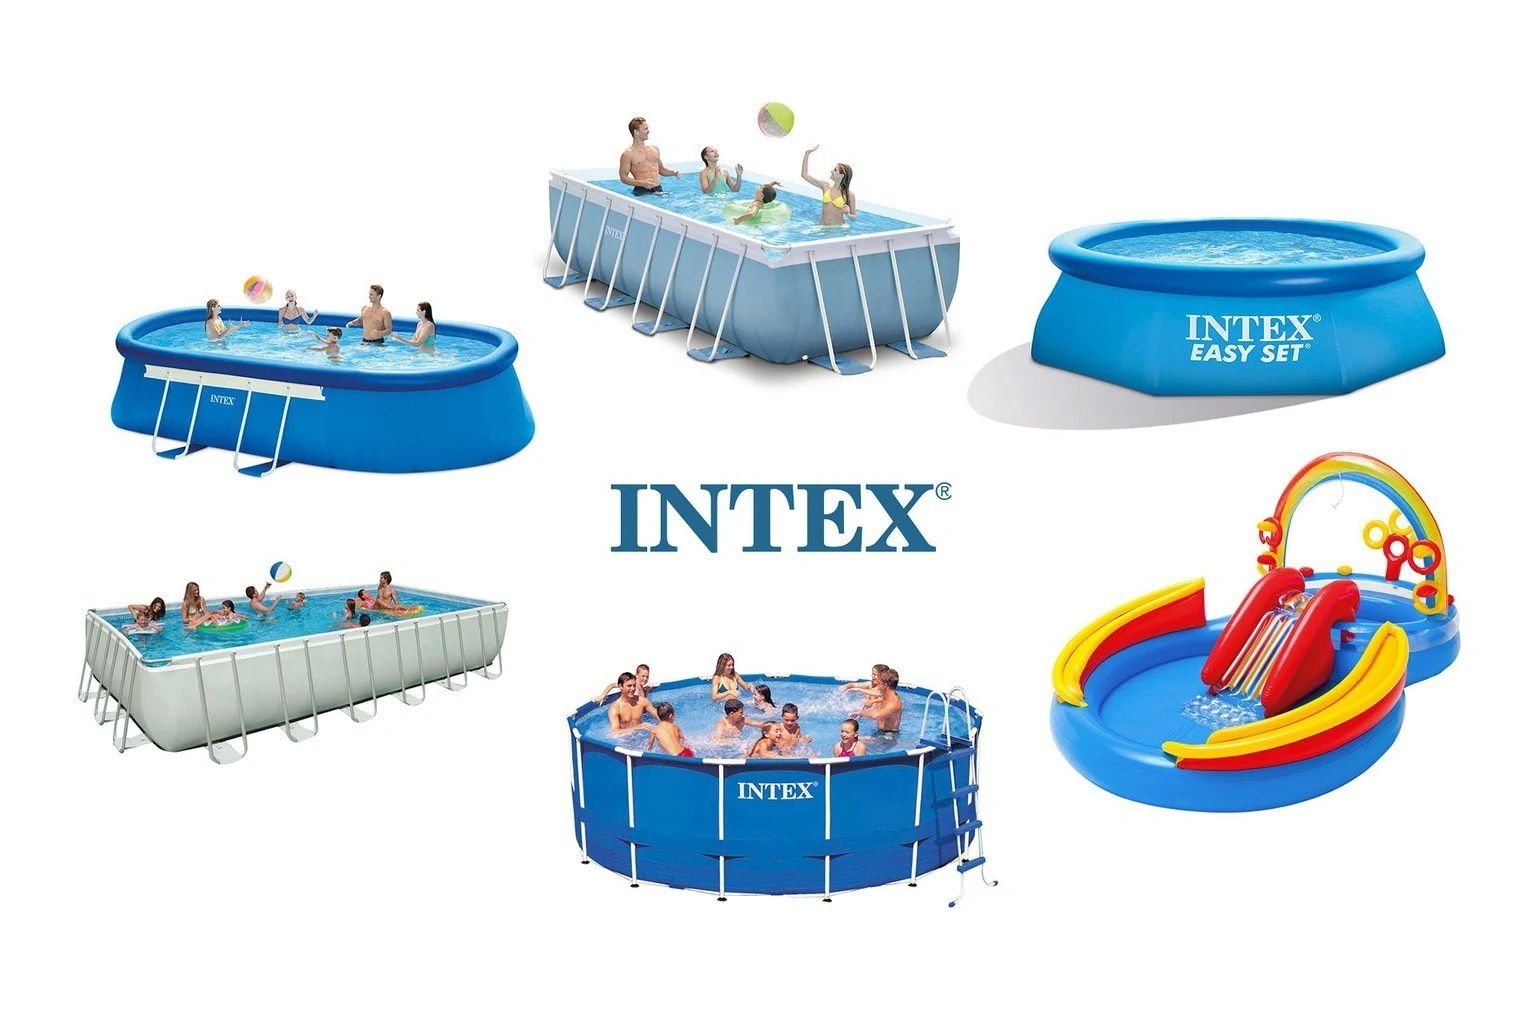 Filterpumpe Pool Amazon Top 6 Best Intex Above Ground Pools Inflatable Framed Review 2019